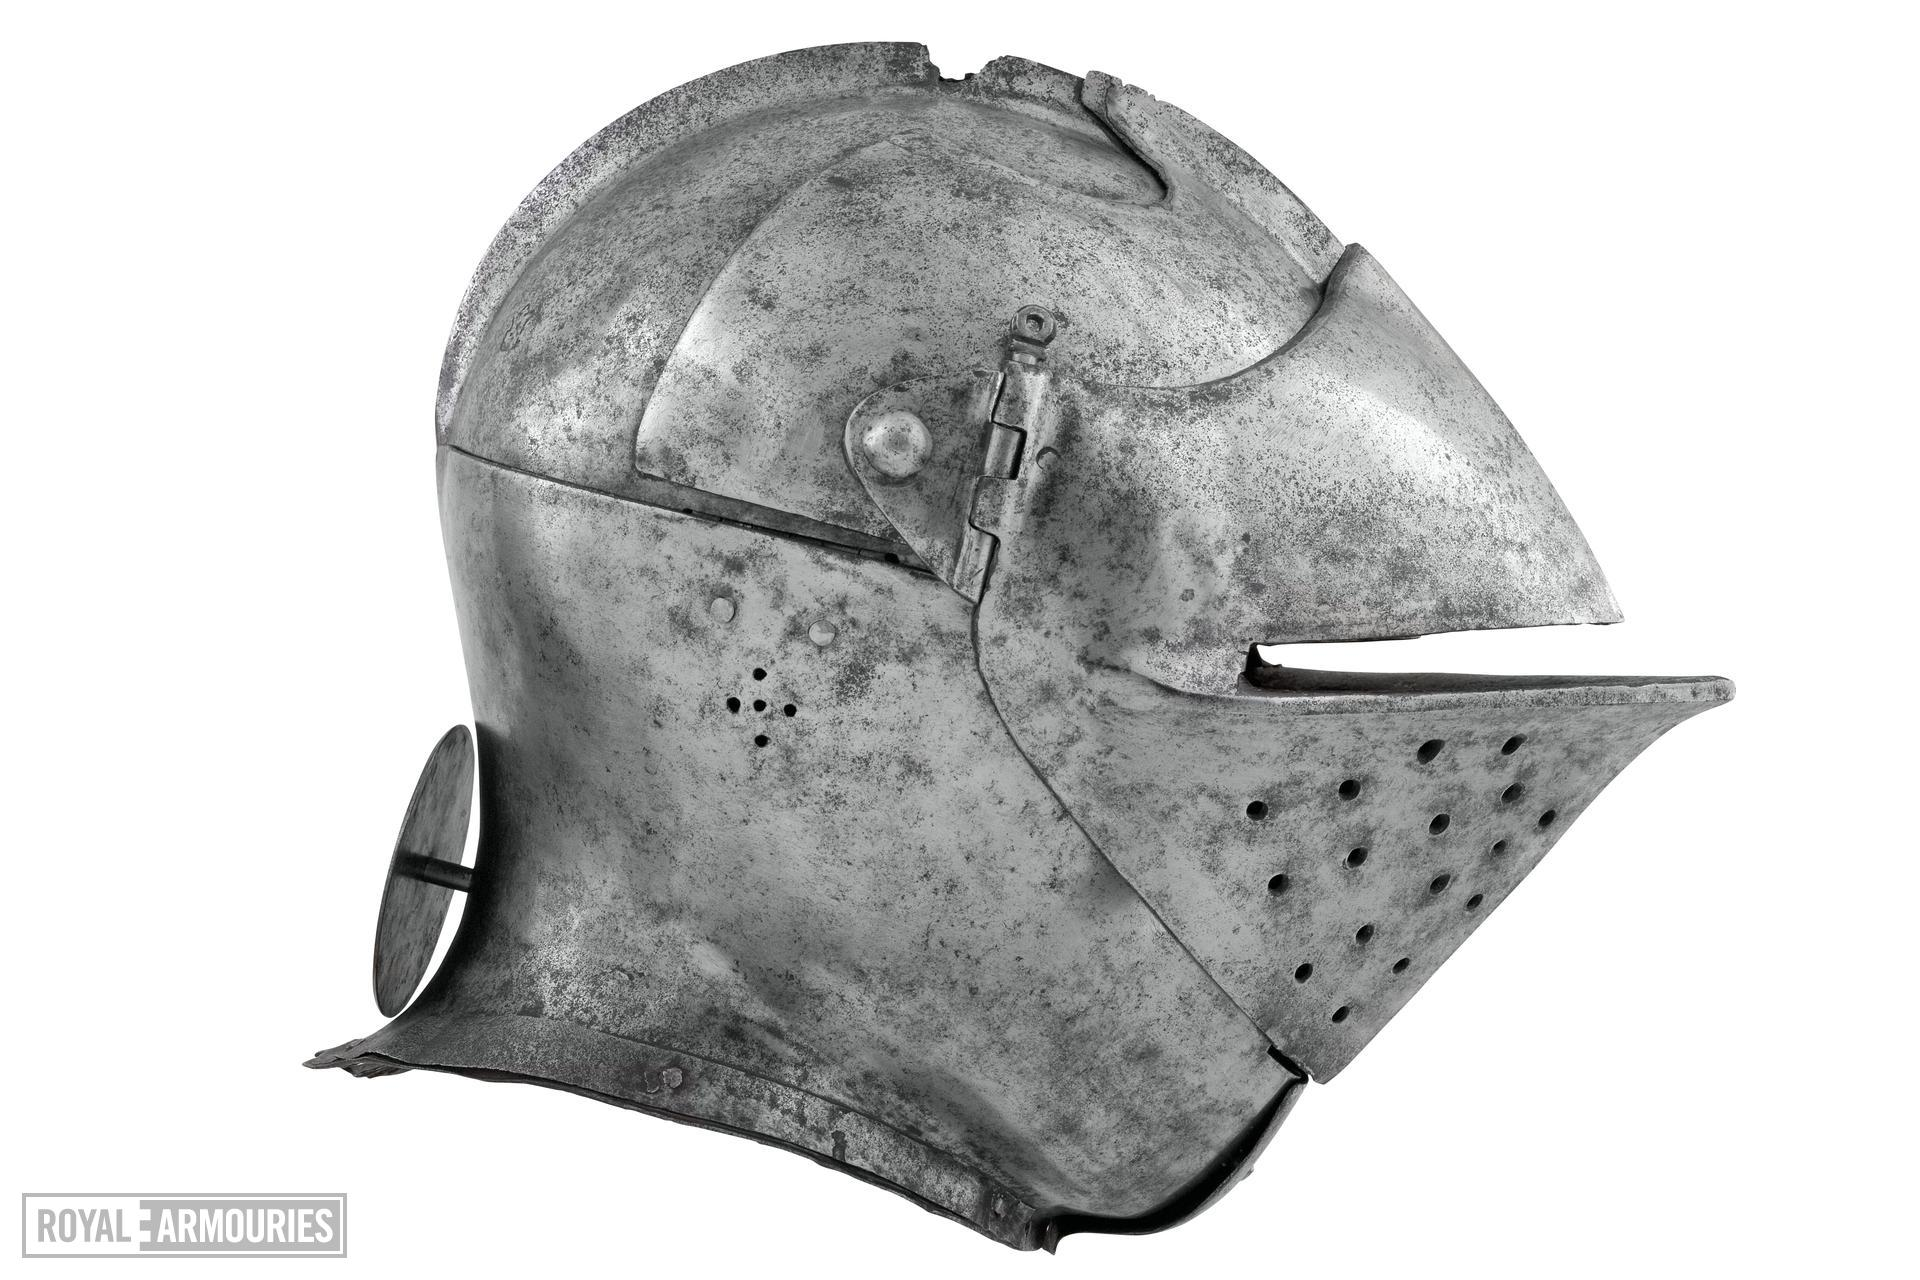 Armet for the tilt. Flemish or Italian, about 1510